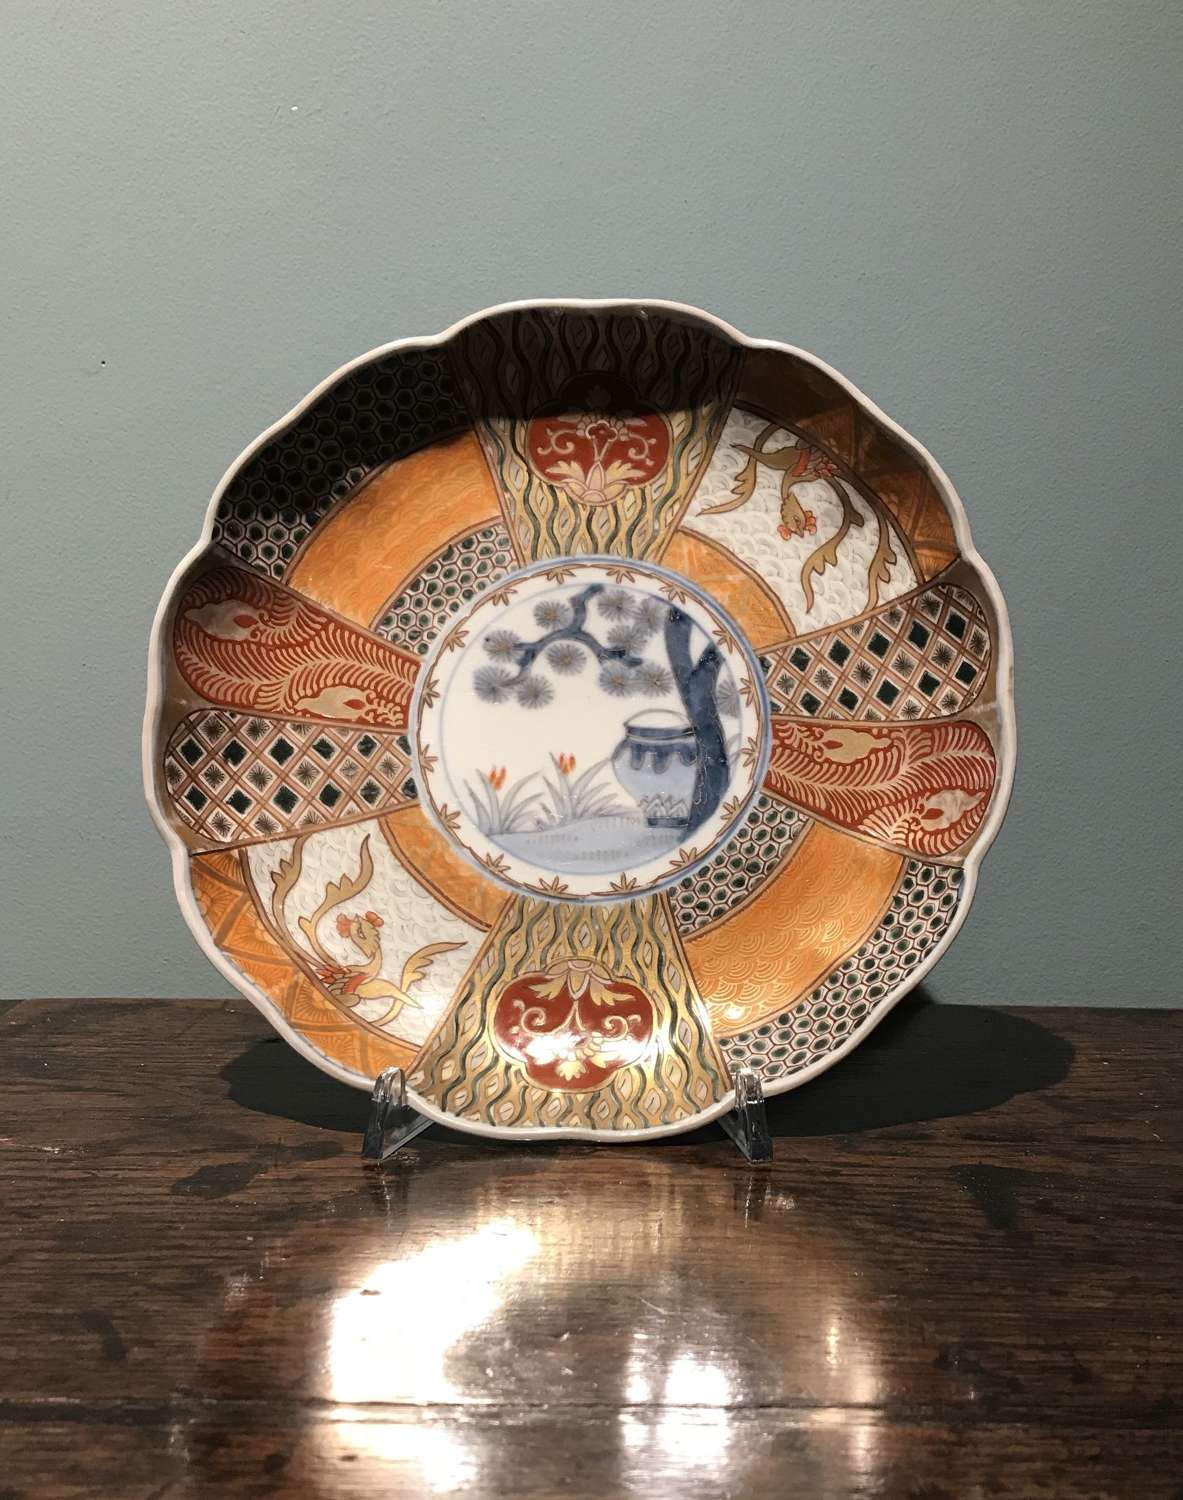 Edo period Japanese plate with pine tree and vase motif